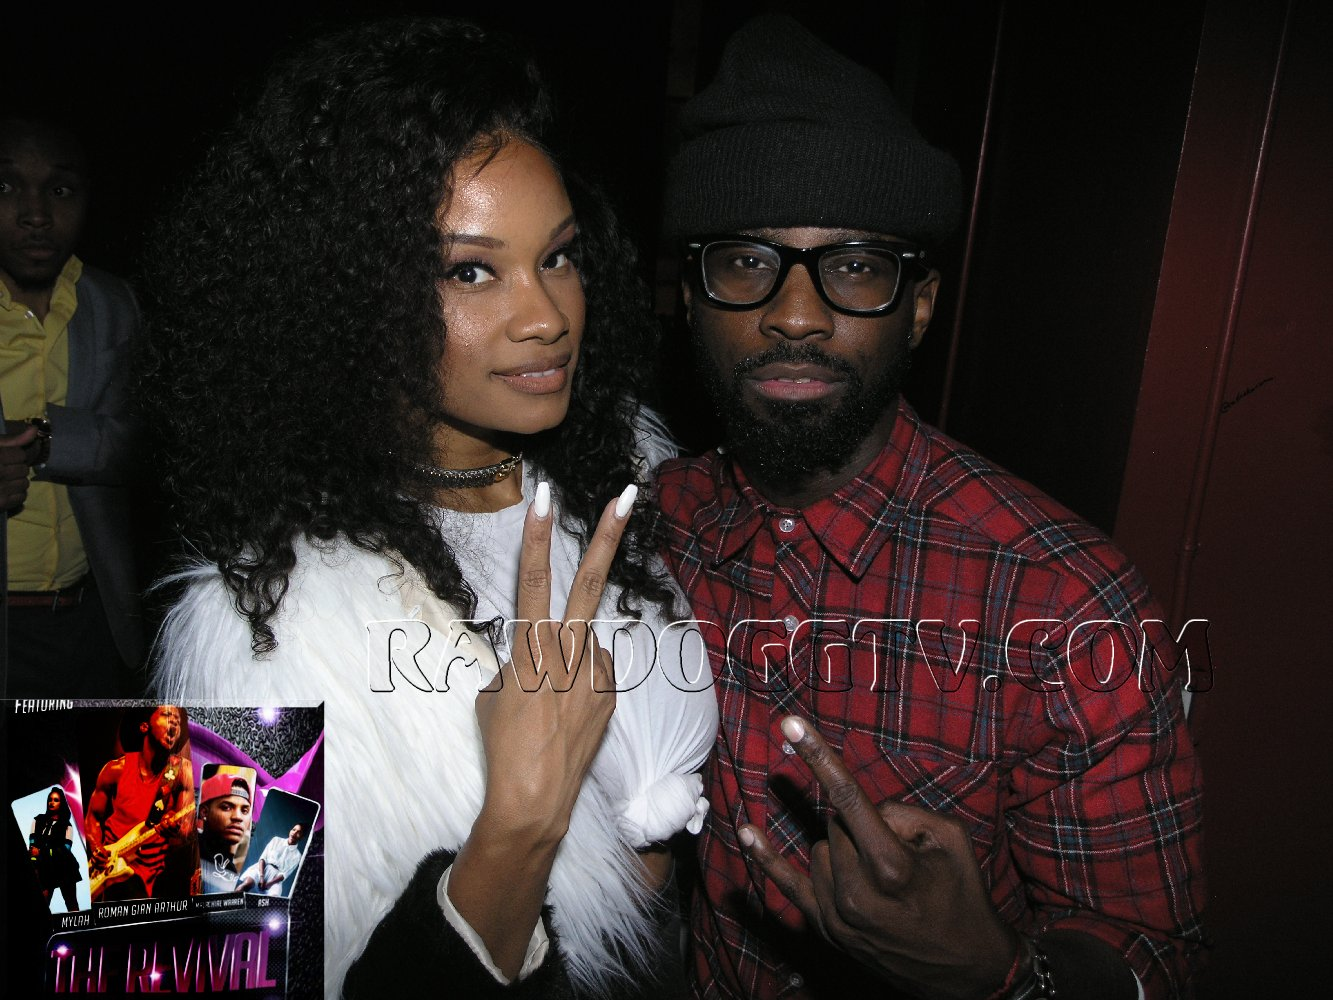 THE REVIVAL R&B SHOWCASE PHOTOS 2015 brian michael cox Atlanta Roman Gianarthur, Mylah, Malachiae, b cox, Real Music Tour-RAWDOGGTV 305-490-2182 Viral Marketing (15)